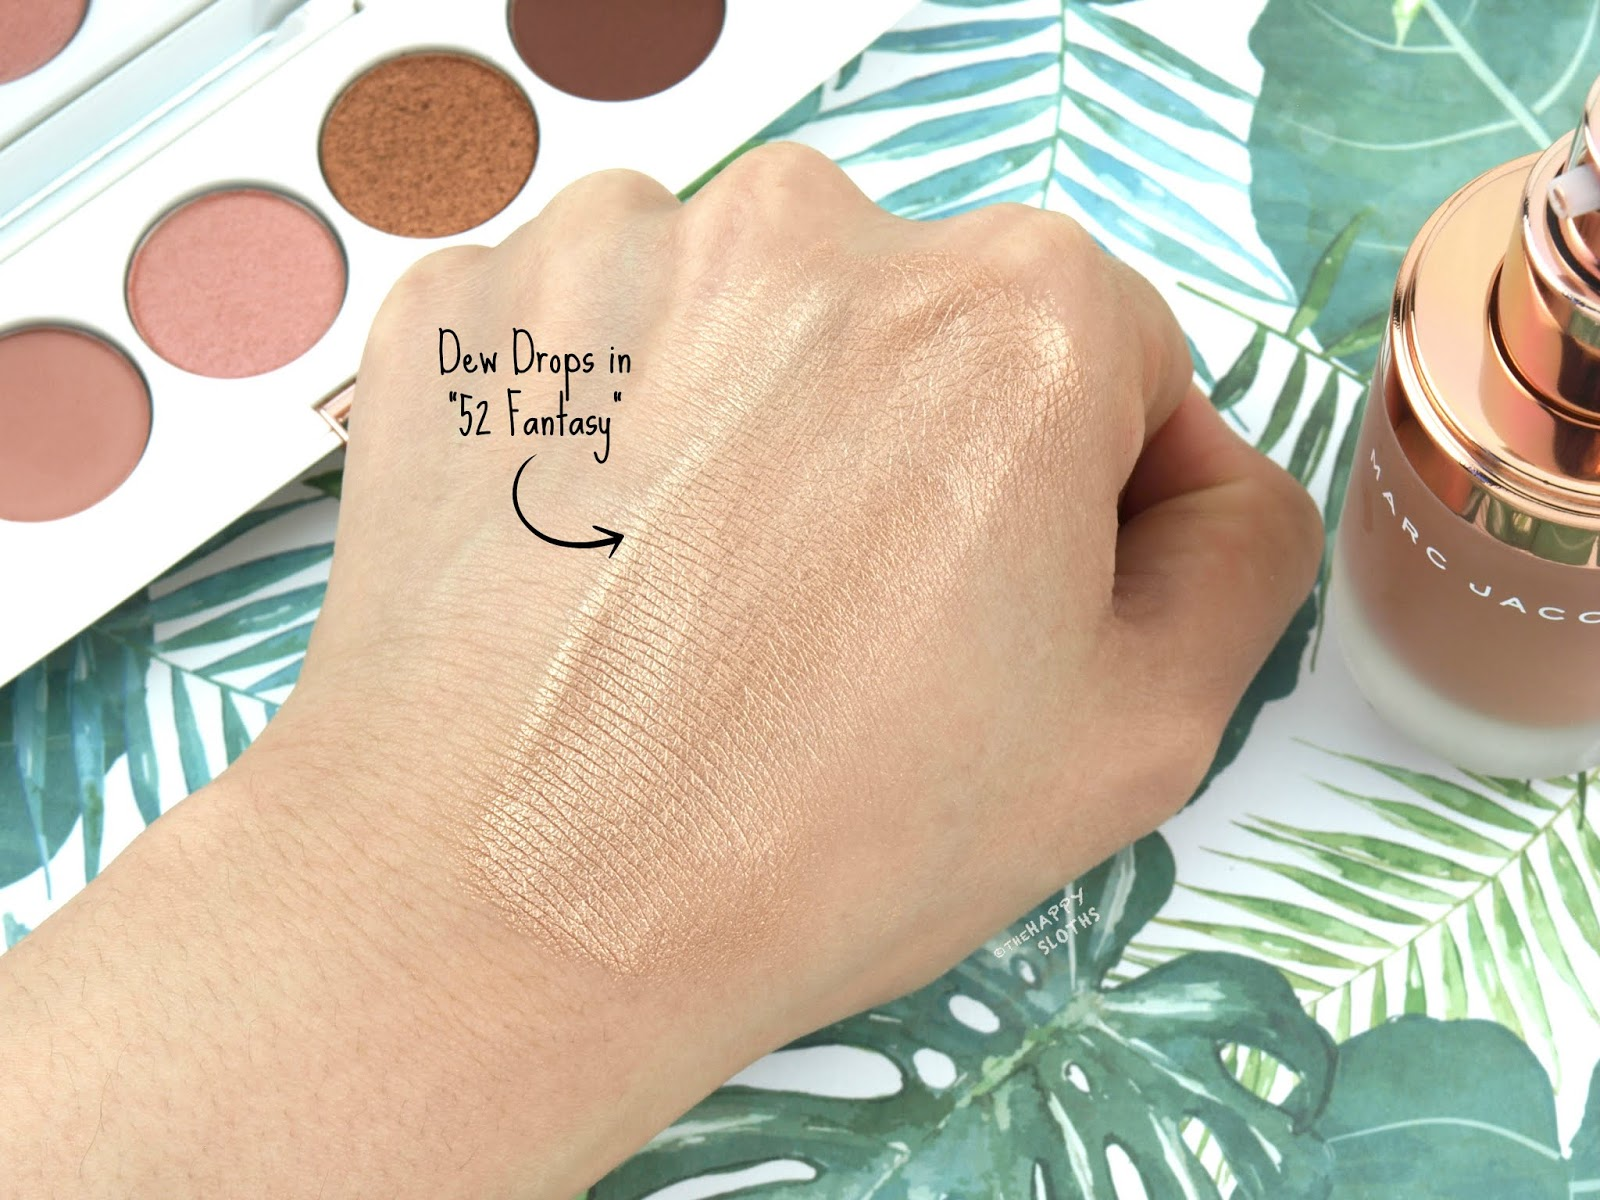 "Marc Jacobs Beauty | Summer 2018 Coconut Fantasy Dew Drops Coconut Gel Highlighter in ""52 Fantasy"": Review and Swatches"